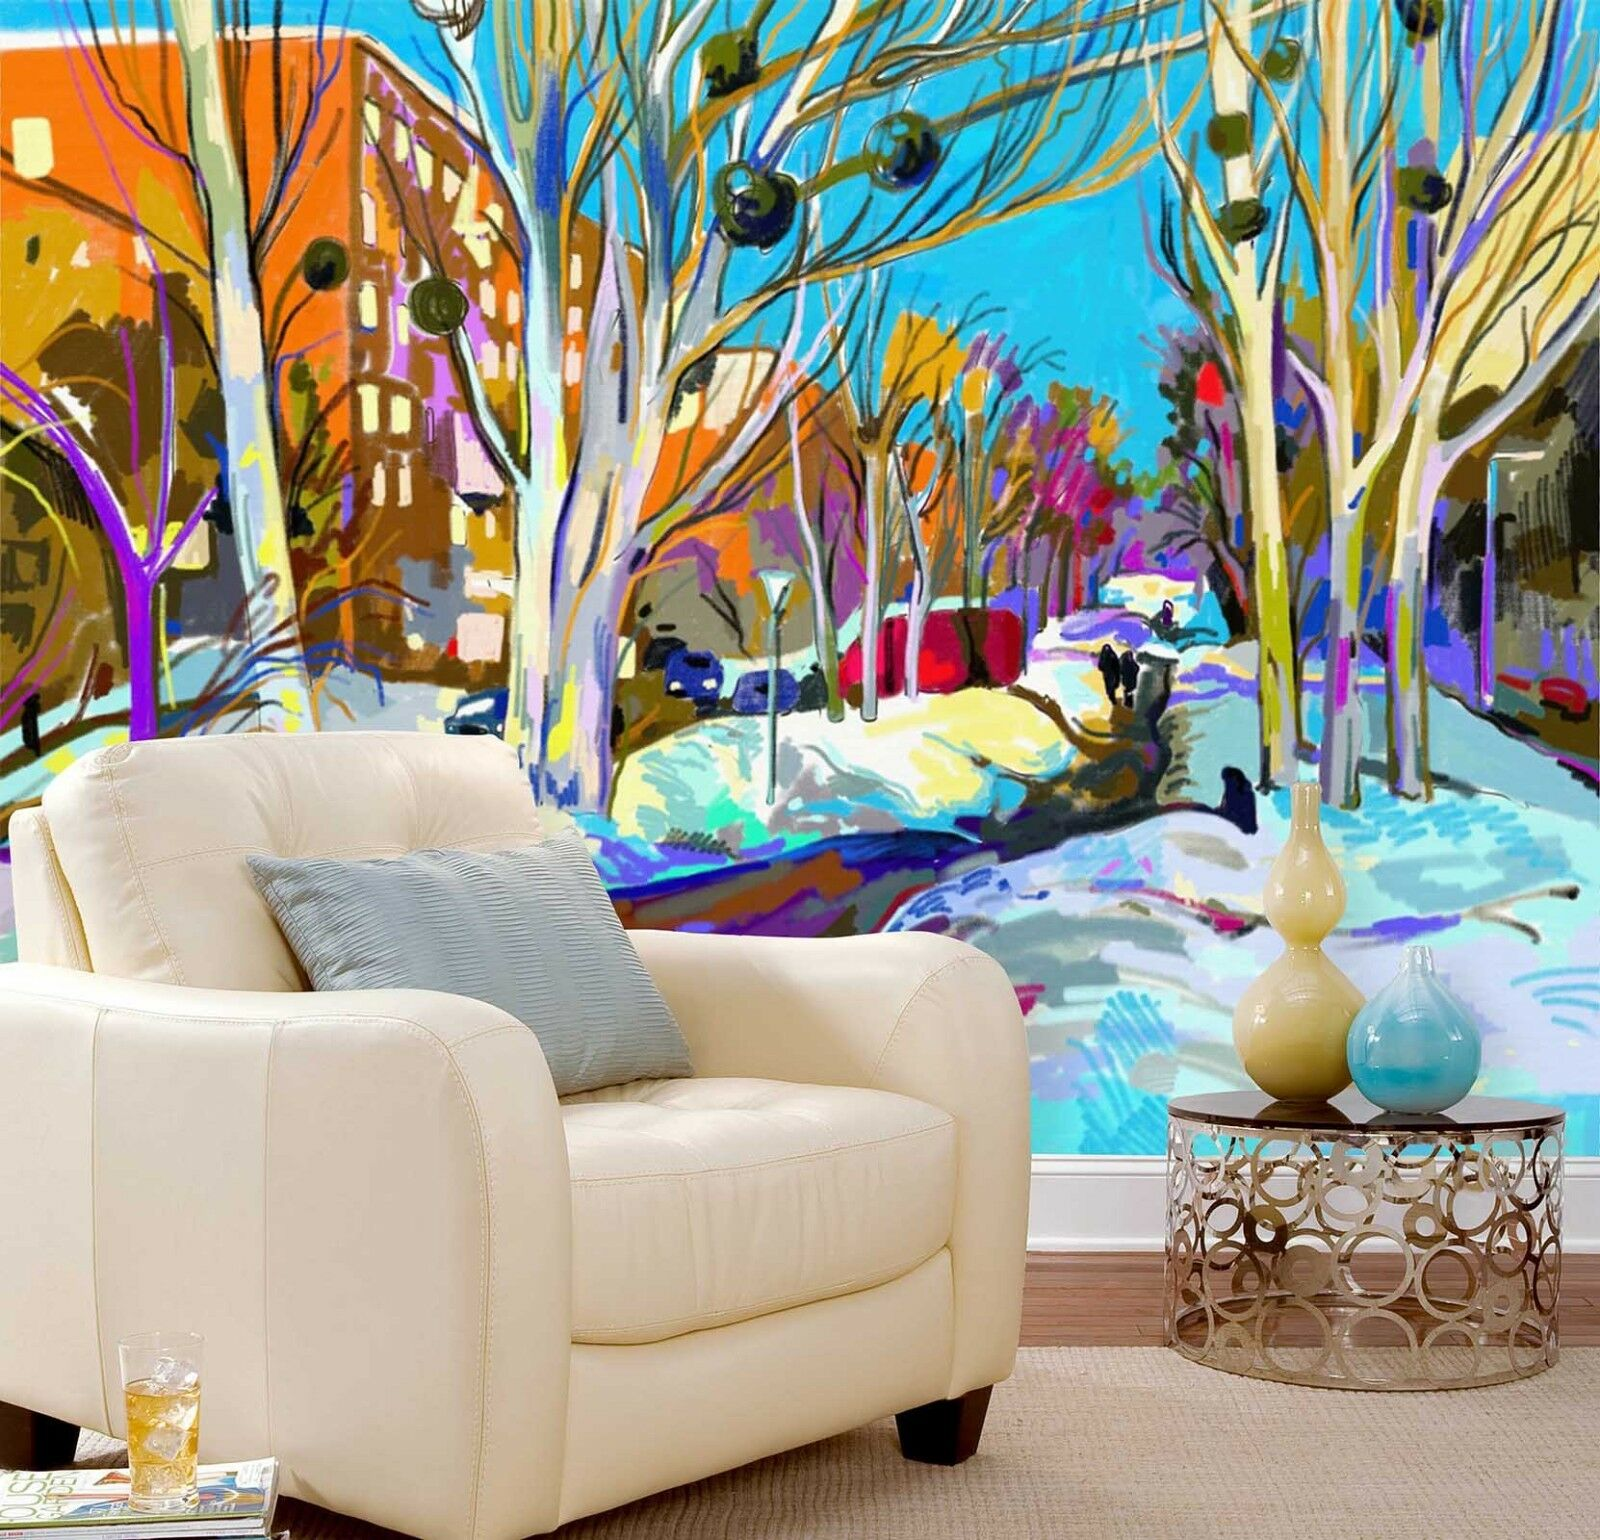 3D Painted Snow Branche Wall Paper Print Decal Wall Deco Indoor wall Mural